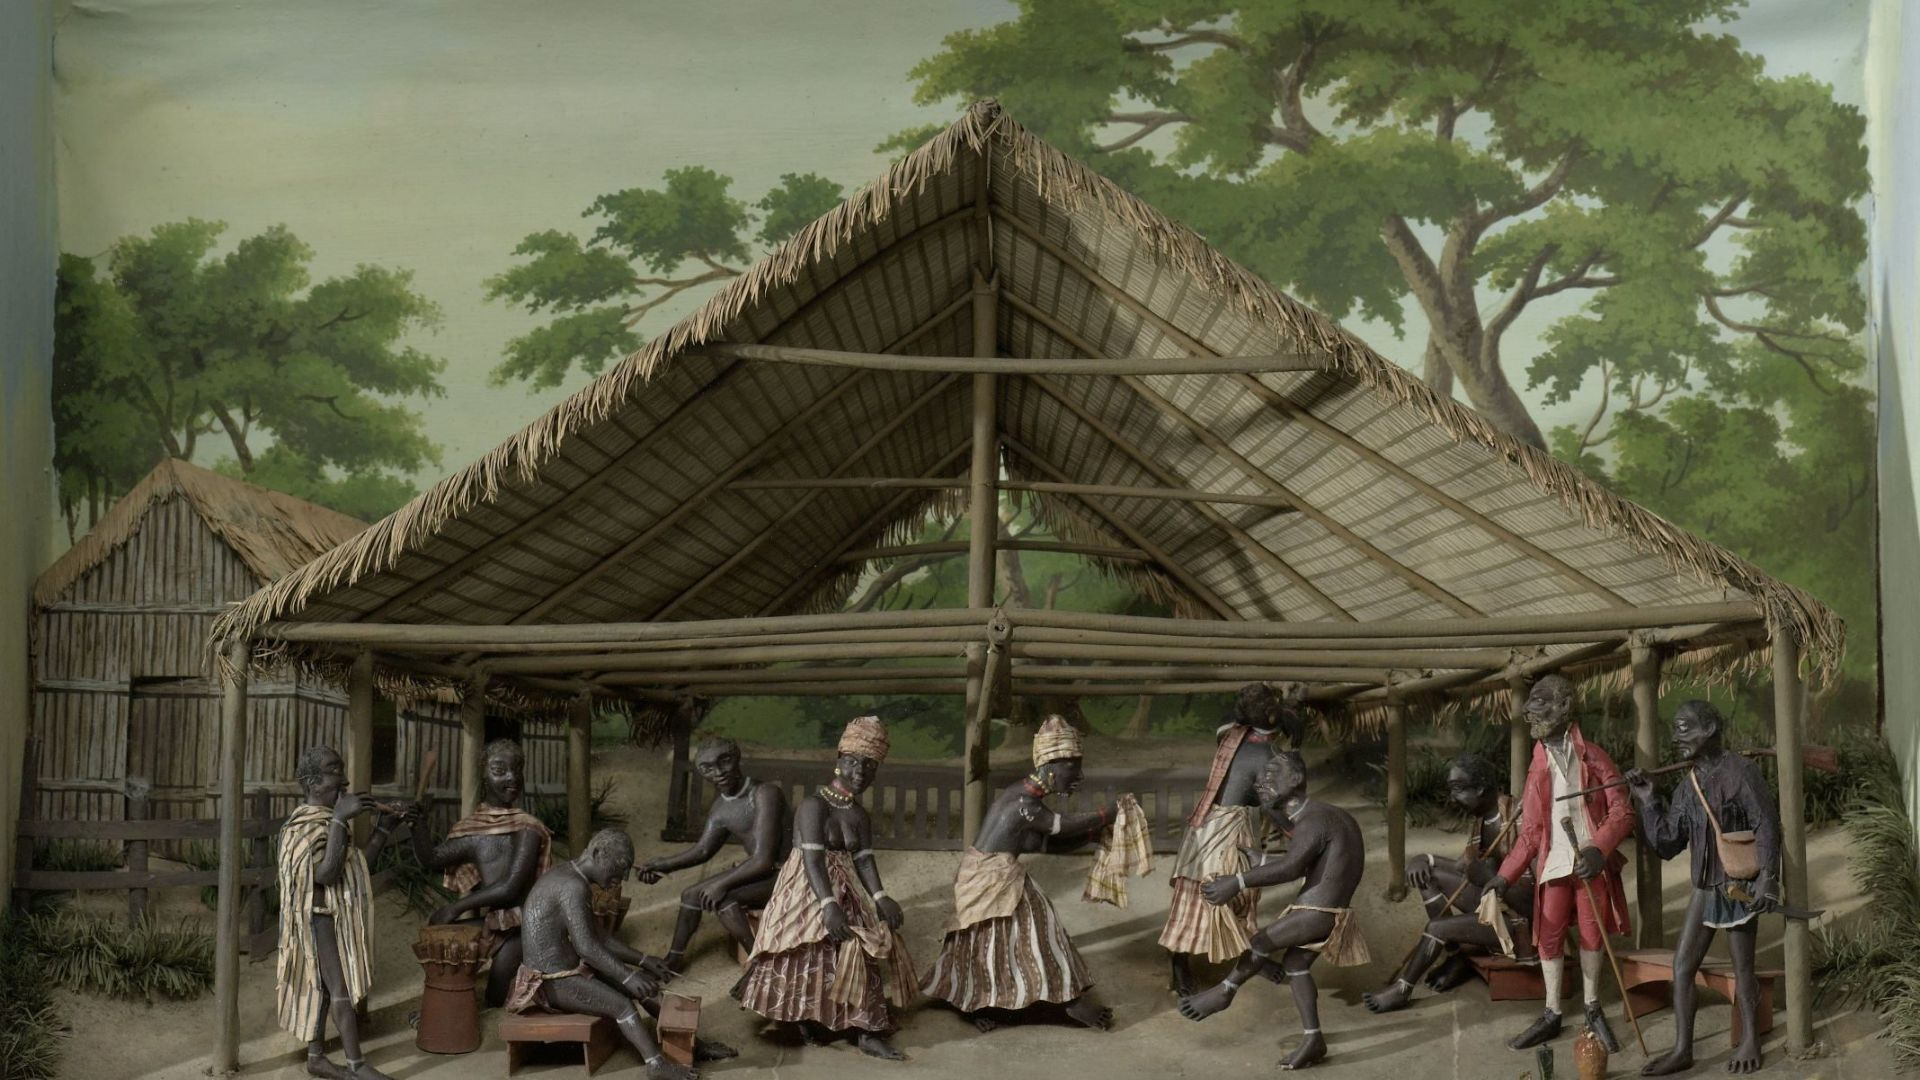 Diorama of a Du, Dance Celebration on the Plantation